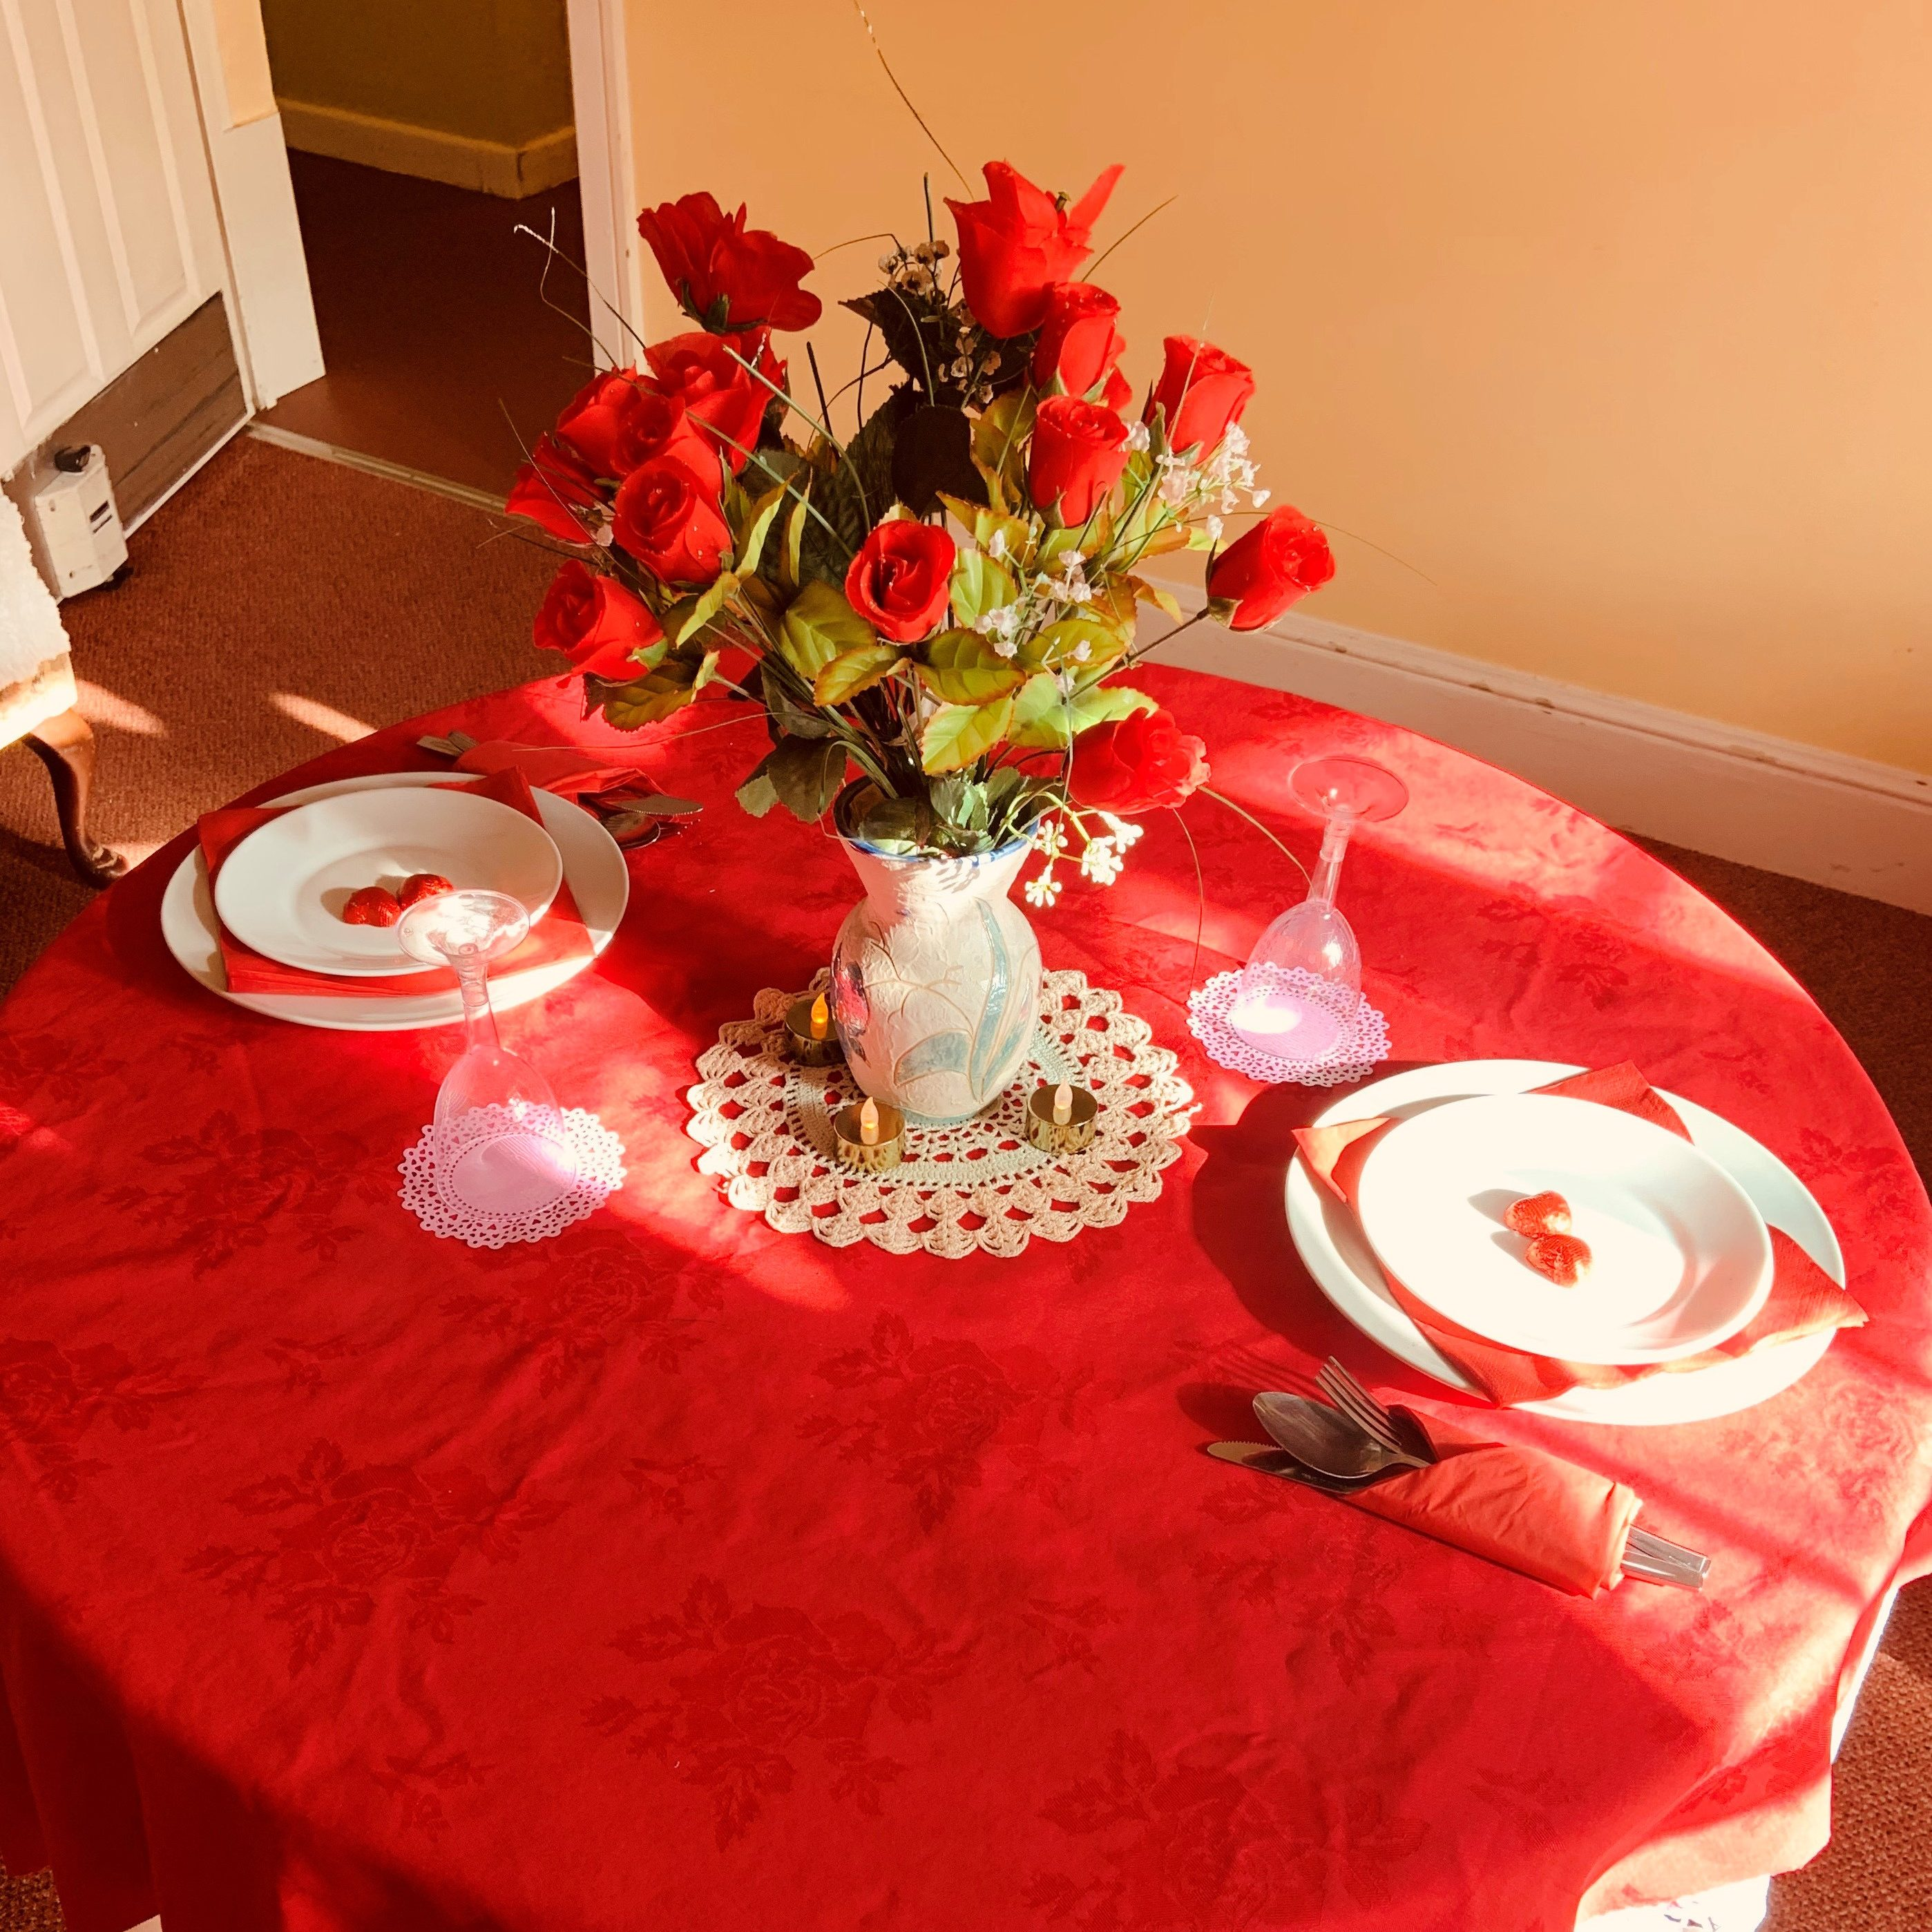 Shows a table laid for two. Red tablecloth, white dinner service with red napkins and a beautiful flower display of roses in crystal glass with white doiley.